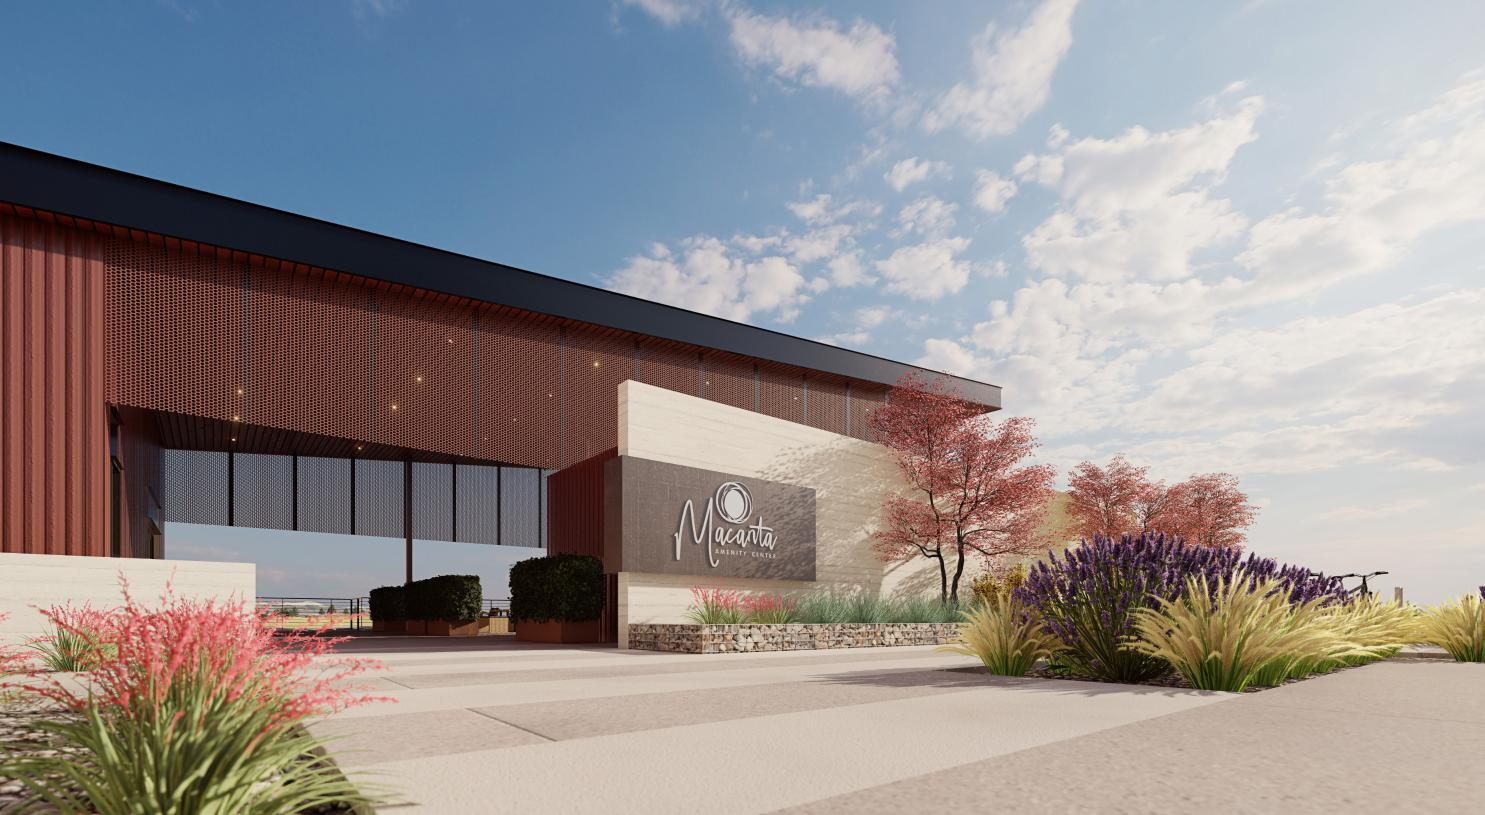 The Spoke Amenity Center promises to be the center of community life